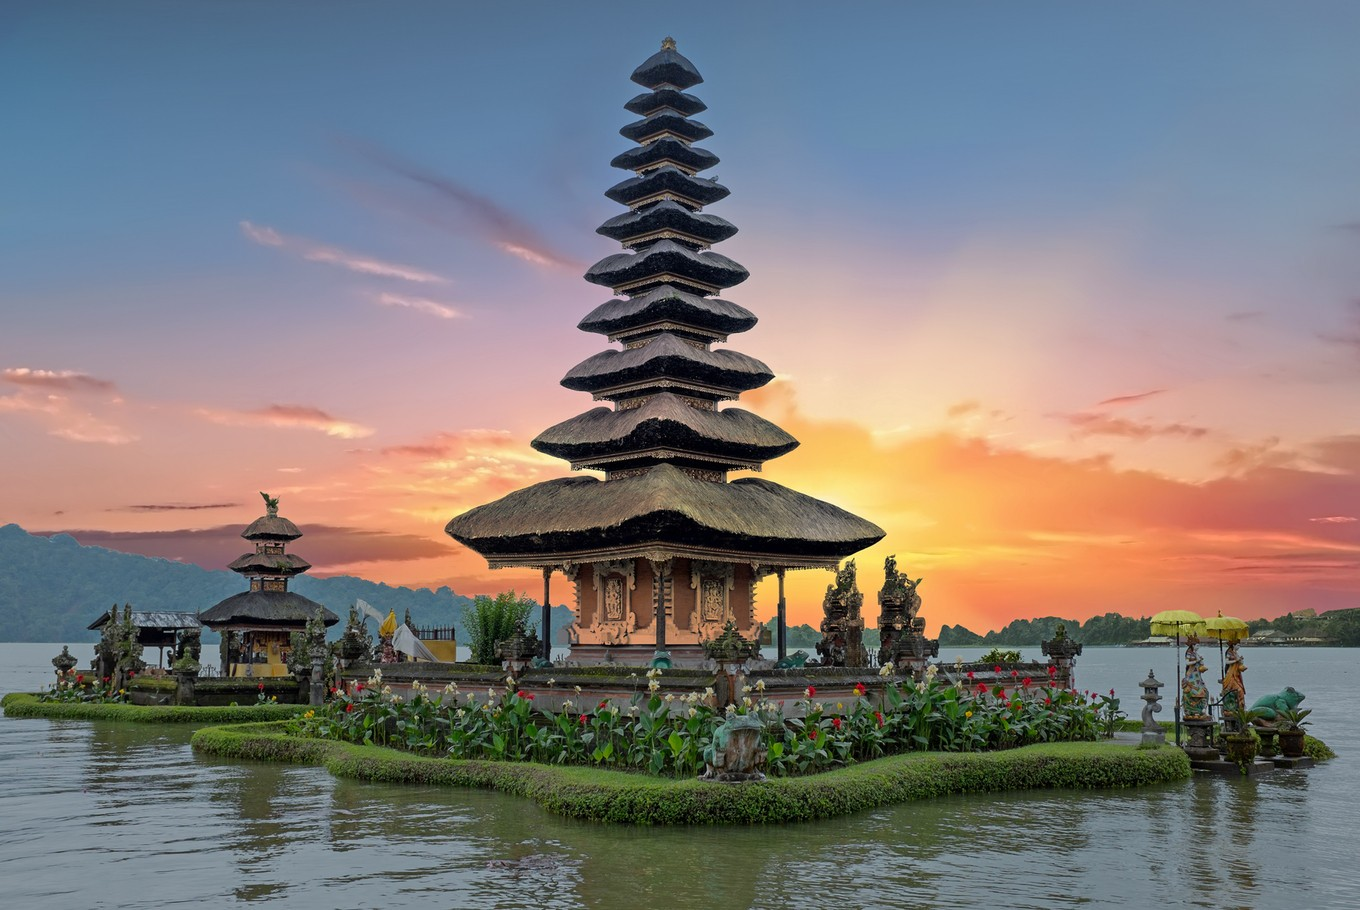 Bali named world's best destination by TripAdvisor - News